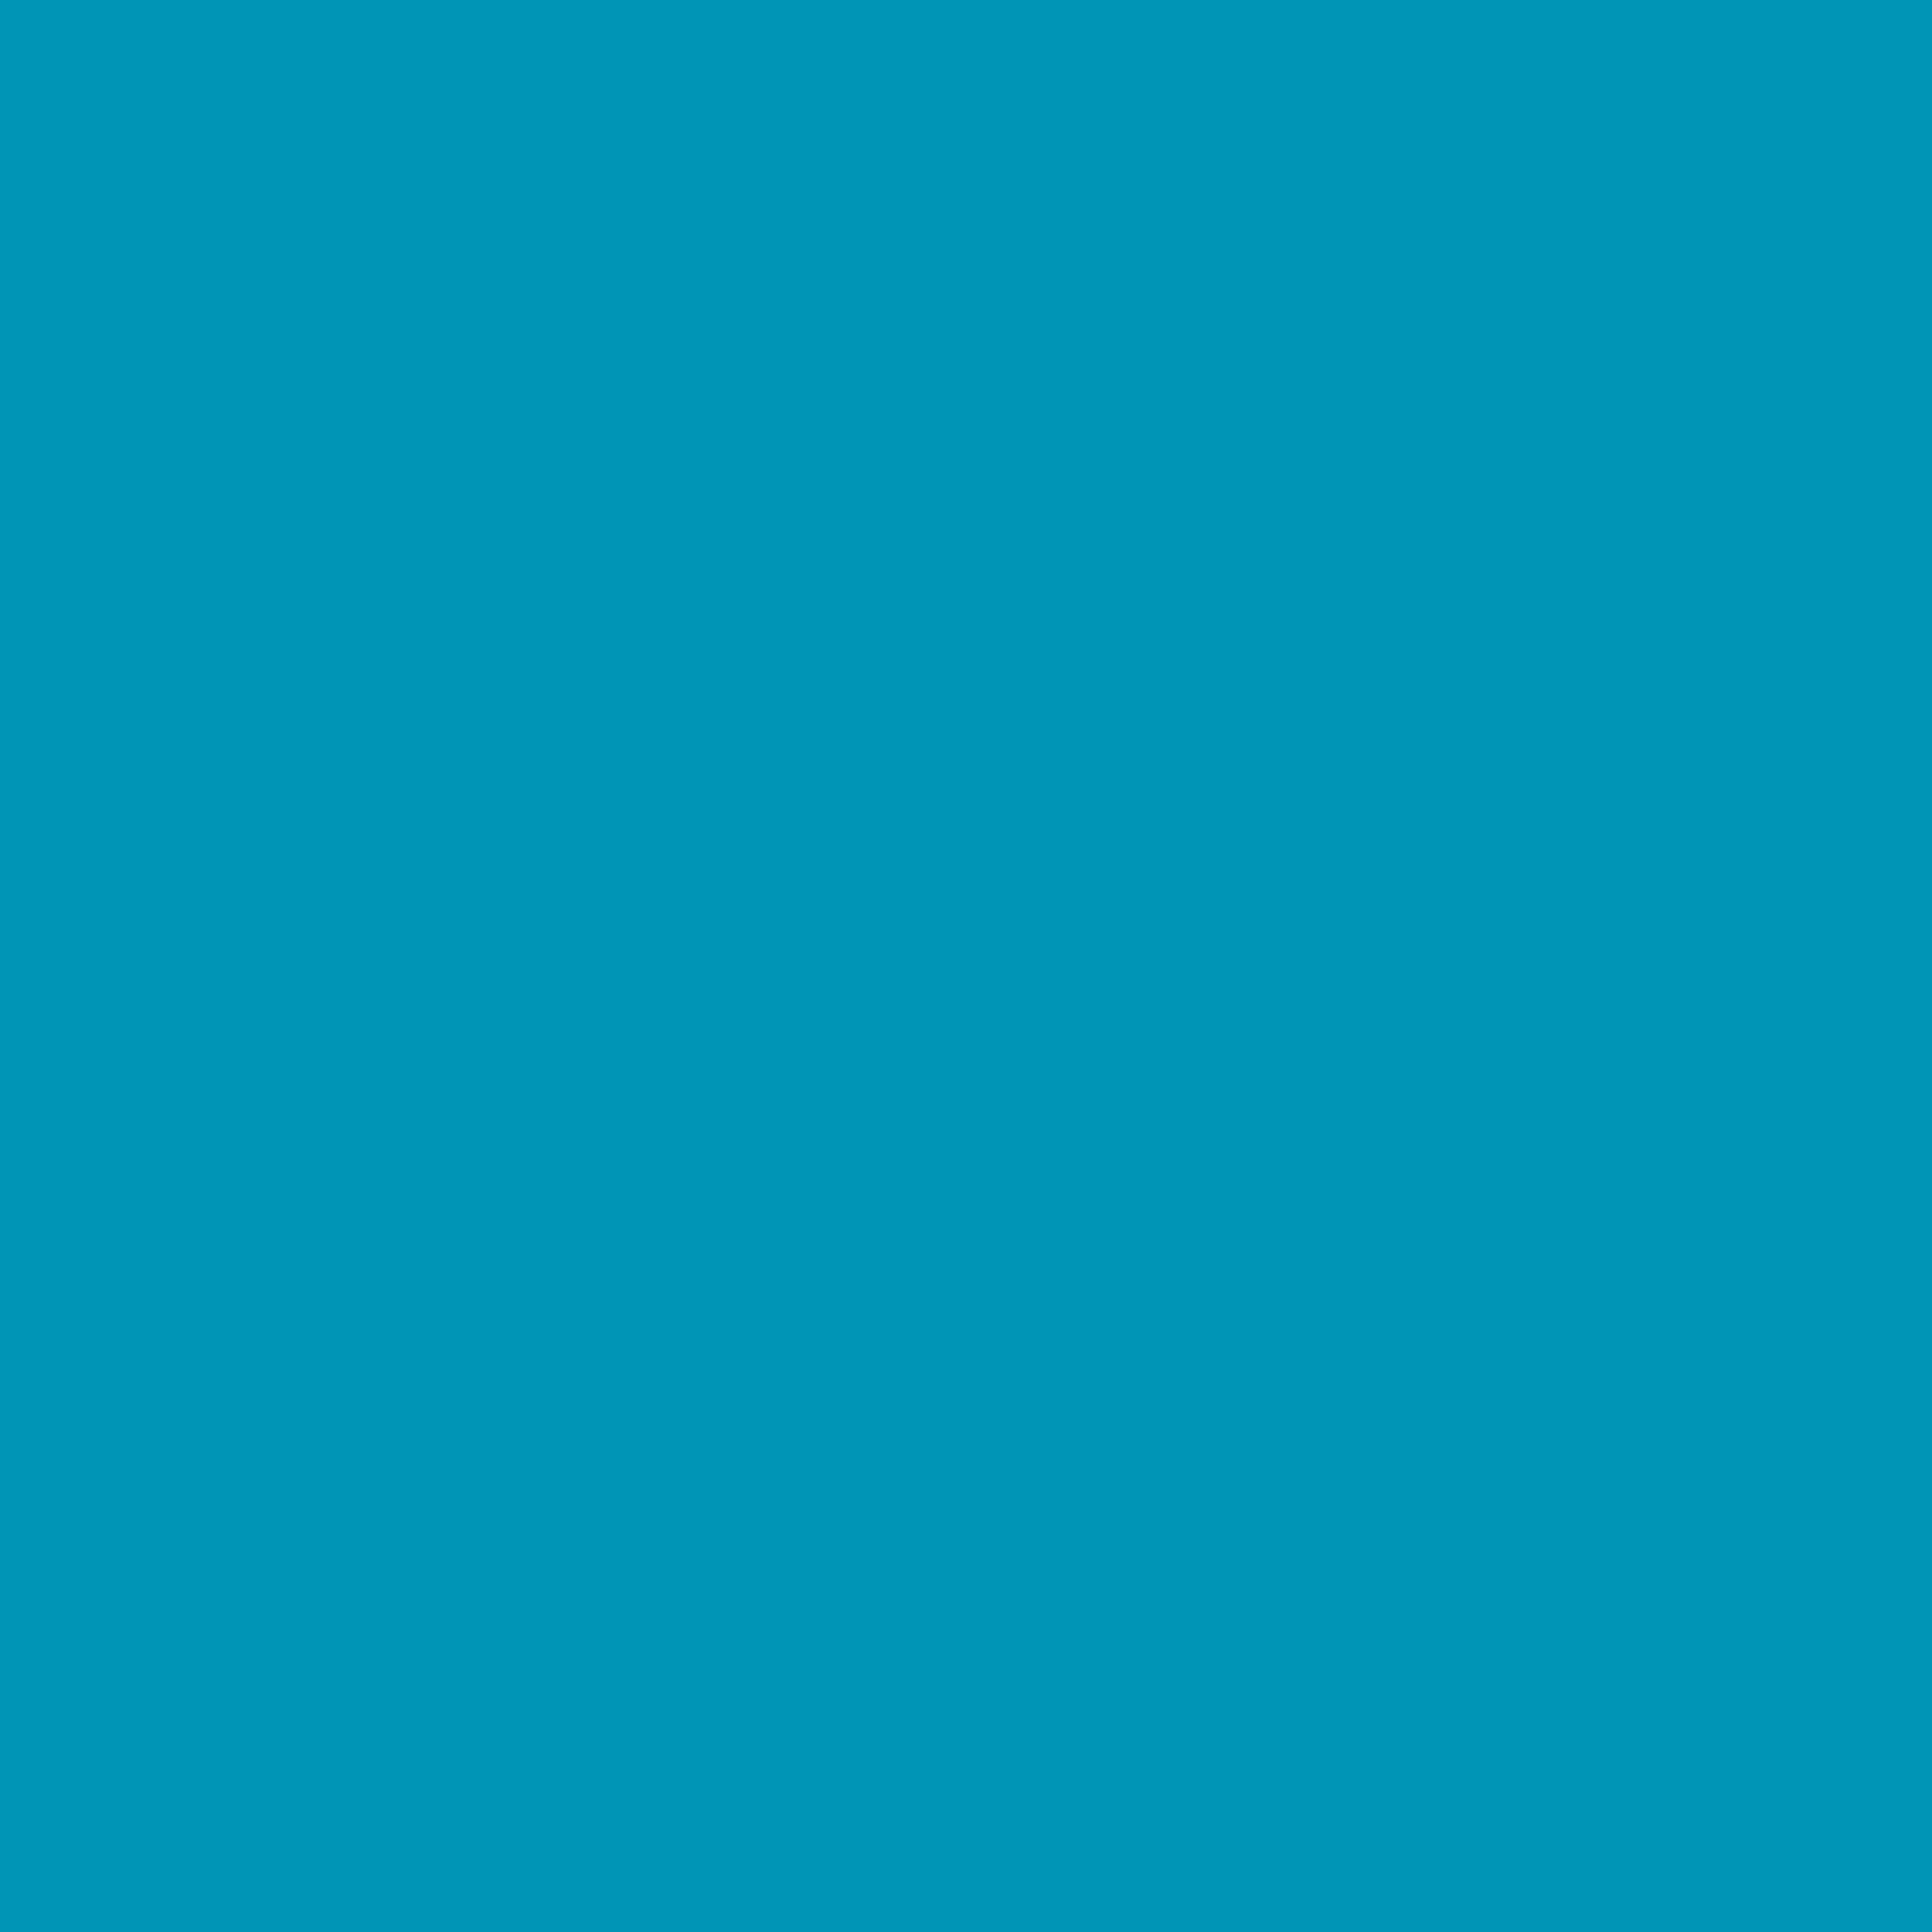 2048x2048 Bondi Blue Solid Color Background